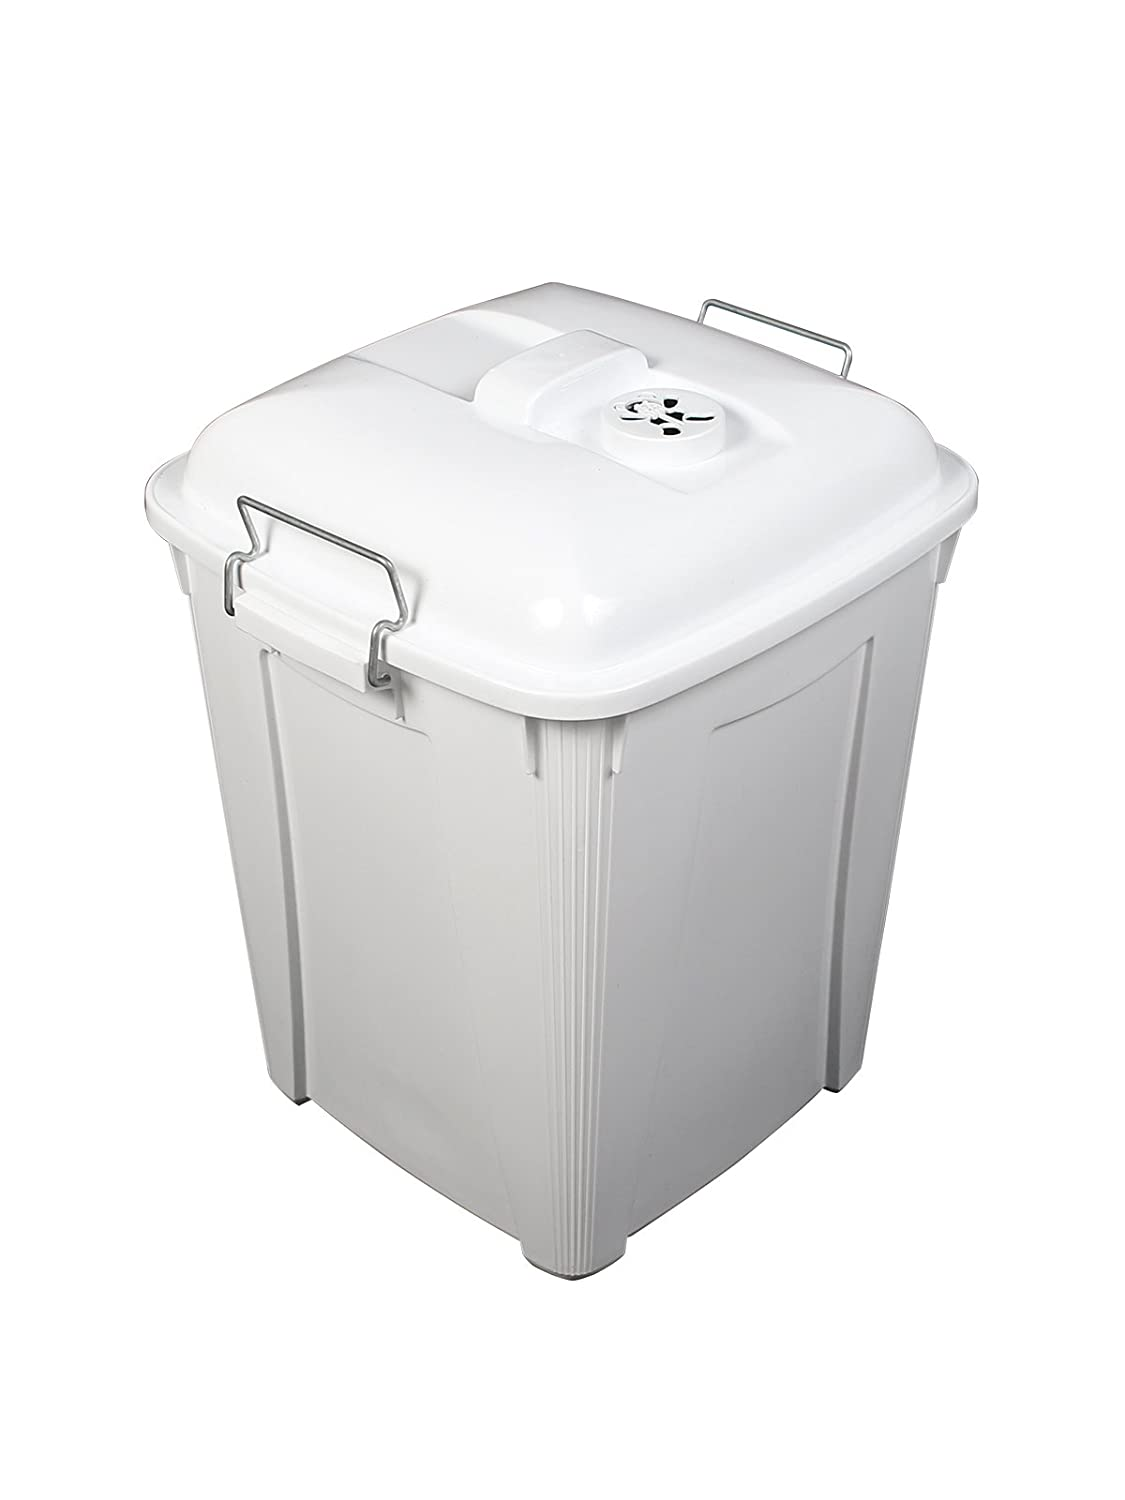 DIAPER PAIL - 14 G - W/LID, HANDLES & ROUND TEDDY CAGE - WHITE